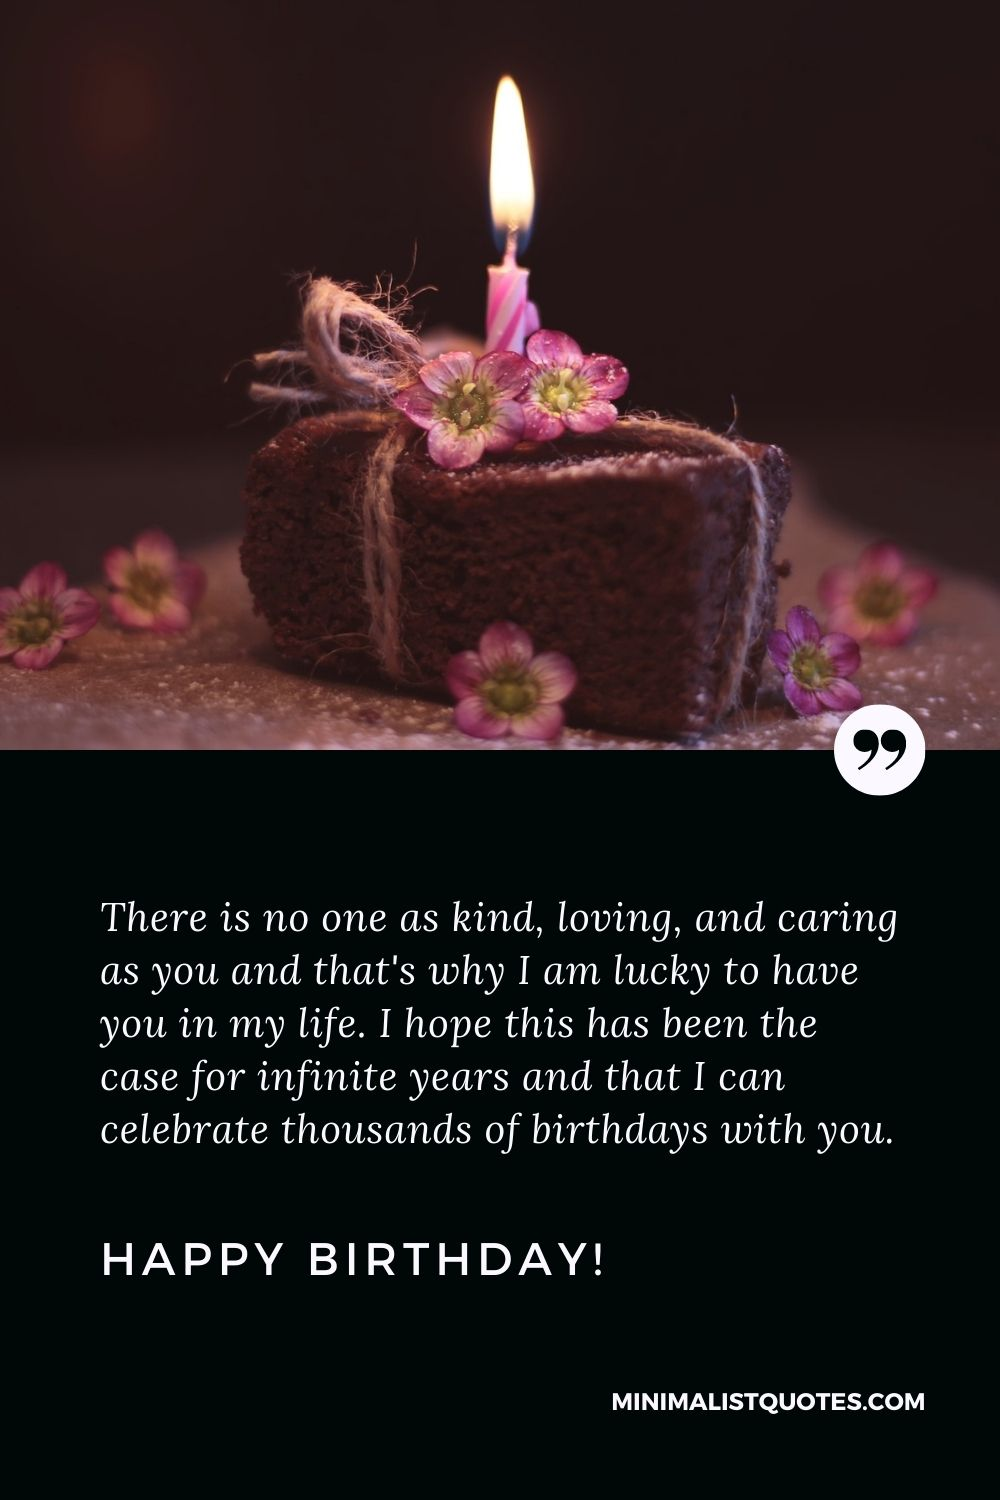 Touching birthday message to a best friend: There is no one as kind, loving, and caring as you and that's why I am lucky to have you in my life. I hope this has been the case for infinite years and that I can celebrate thousands of birthdays with you. Happy Birthday!